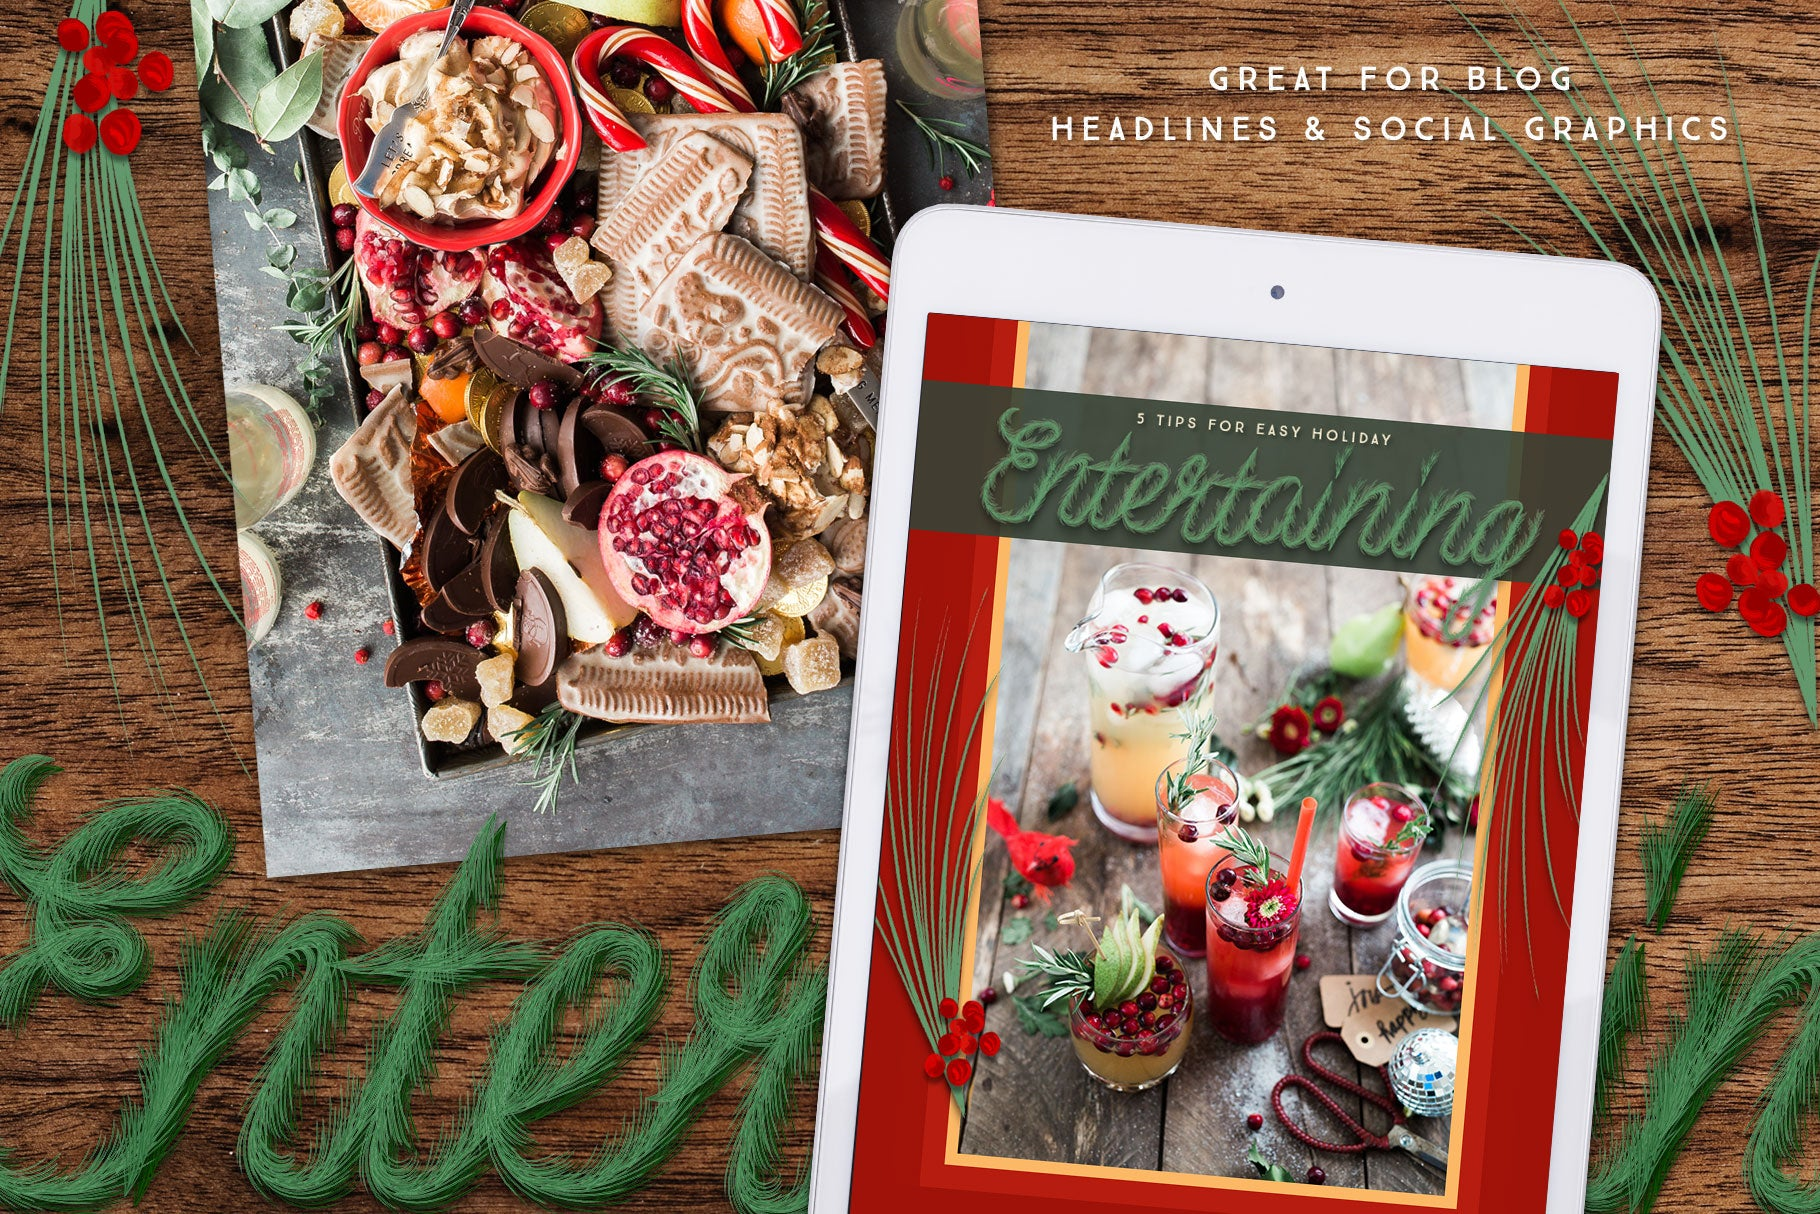 Luxe Christmas & Holiday Greenery Alphabets: use for headlines and social graphics